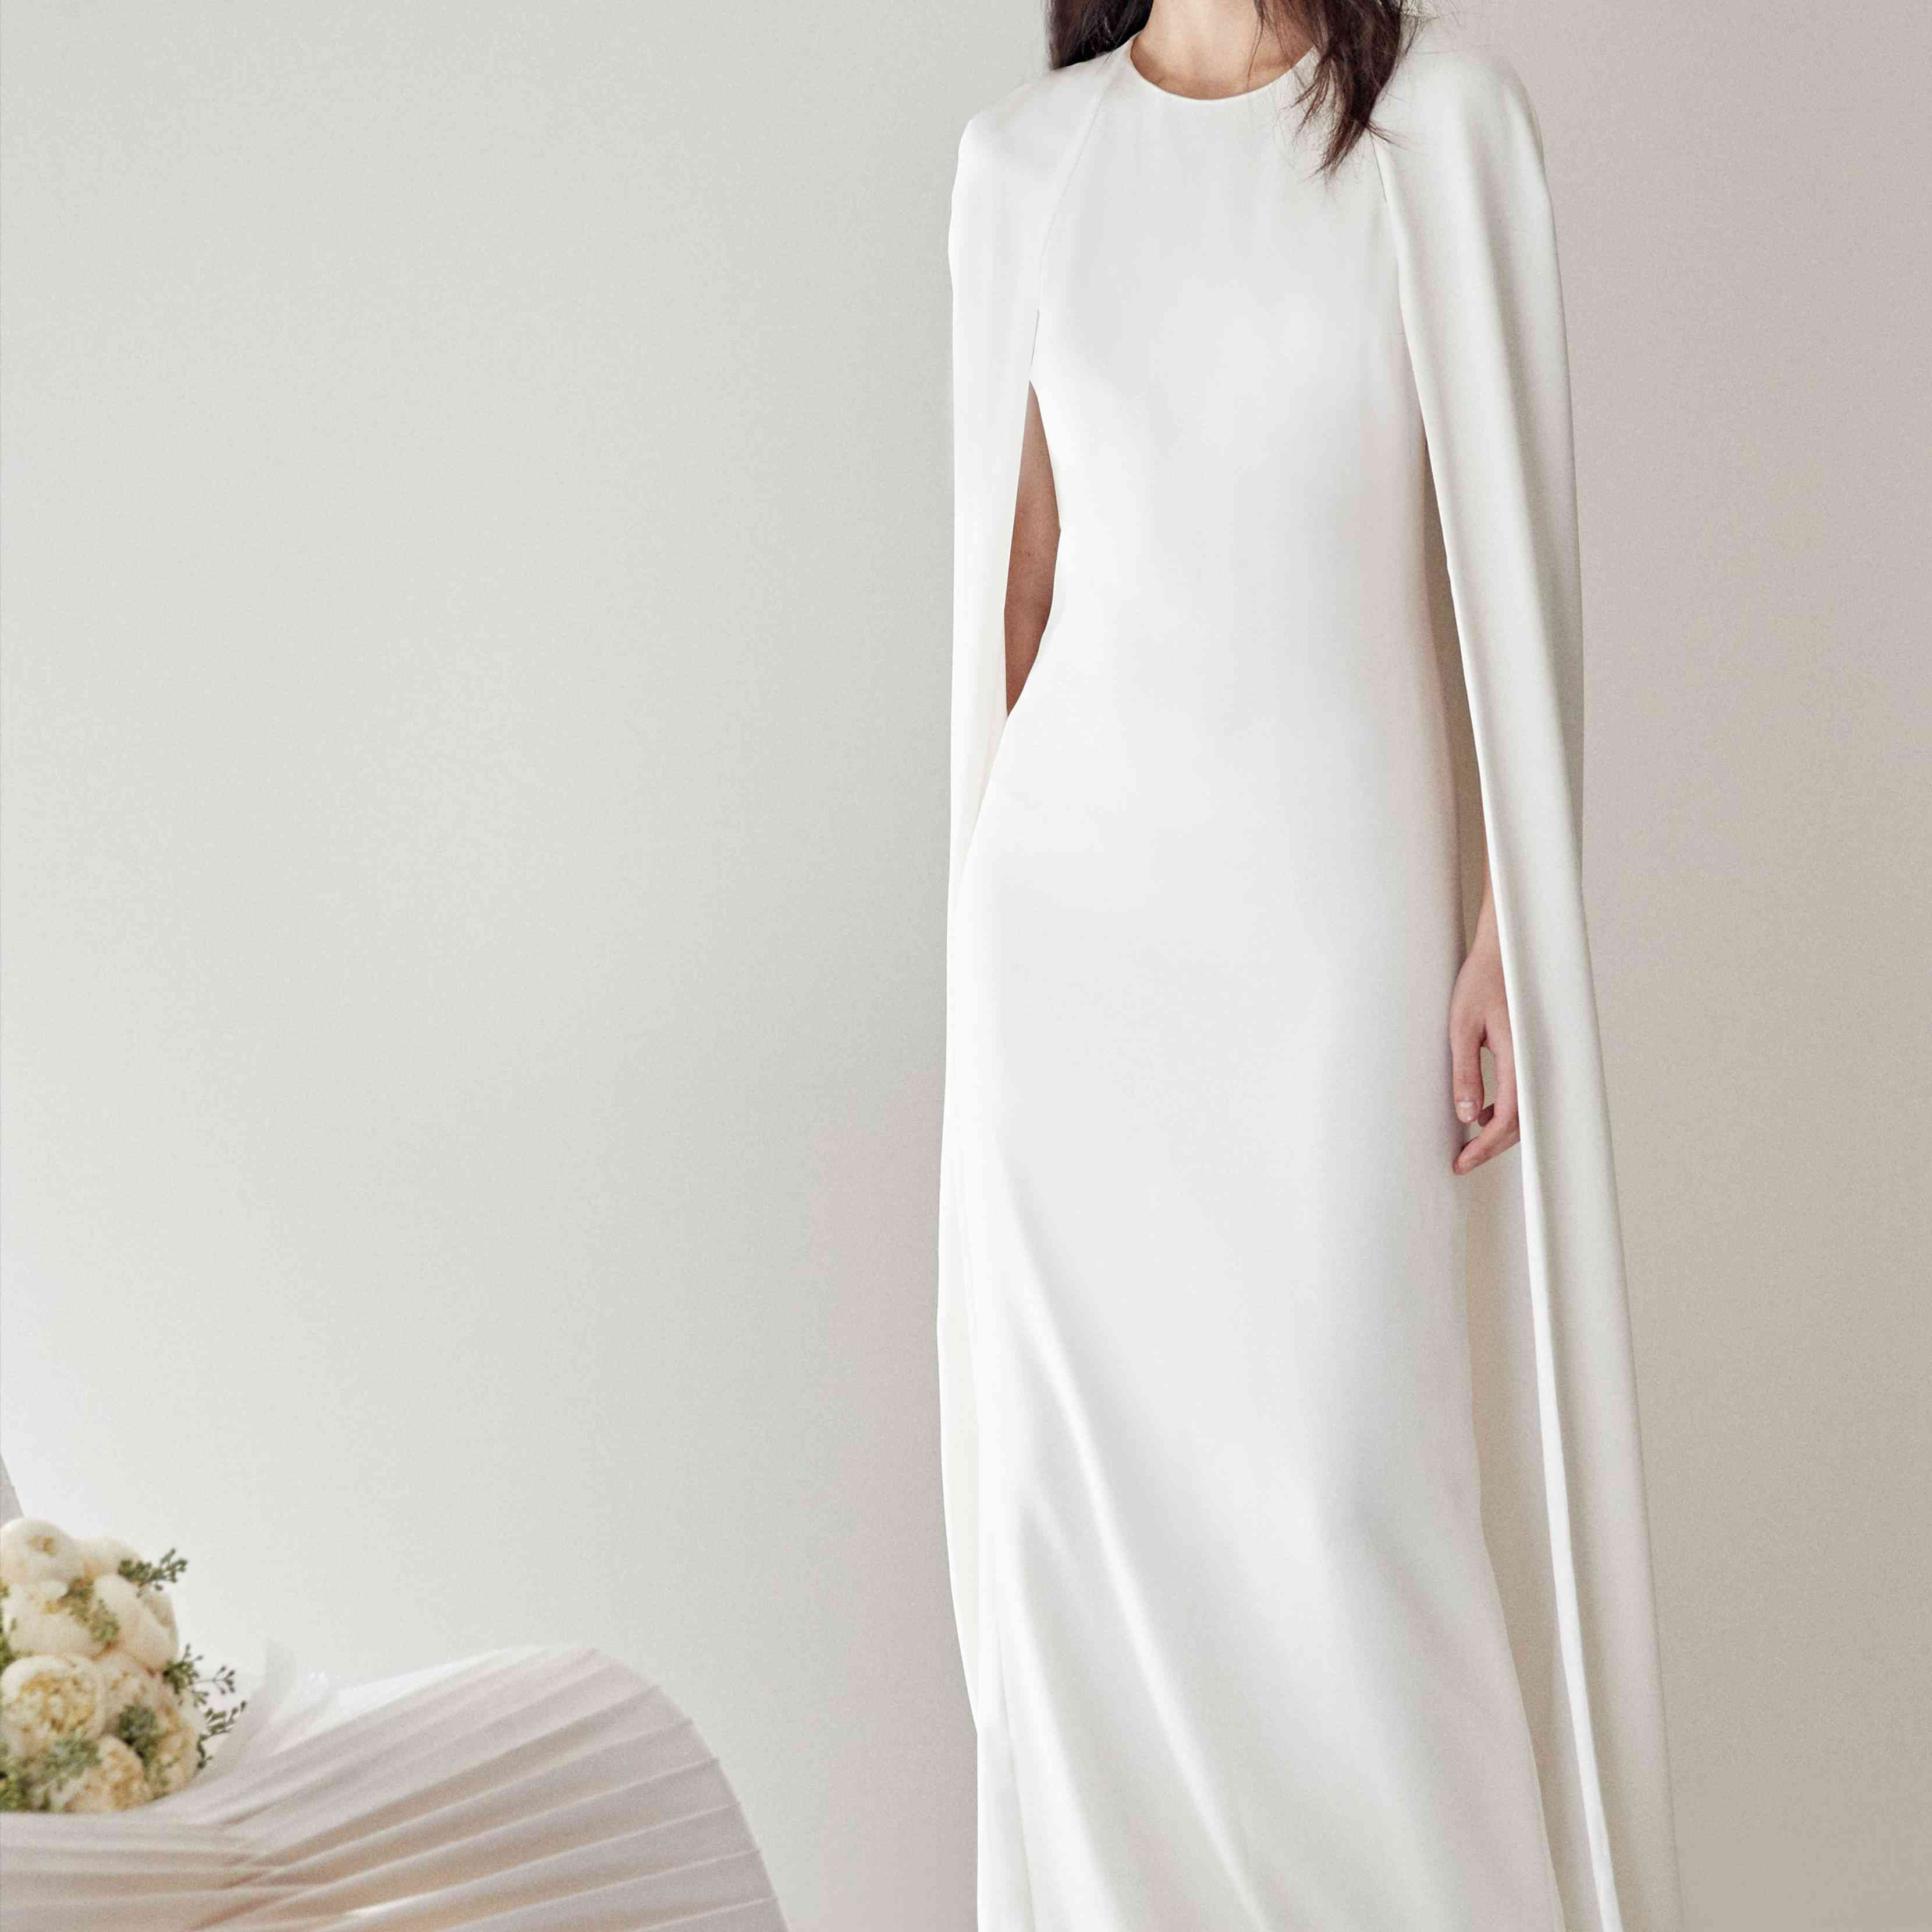 The 29 Best Simple Wedding Dresses Of 2020,Wedding Dresses For Tall Curvy Brides